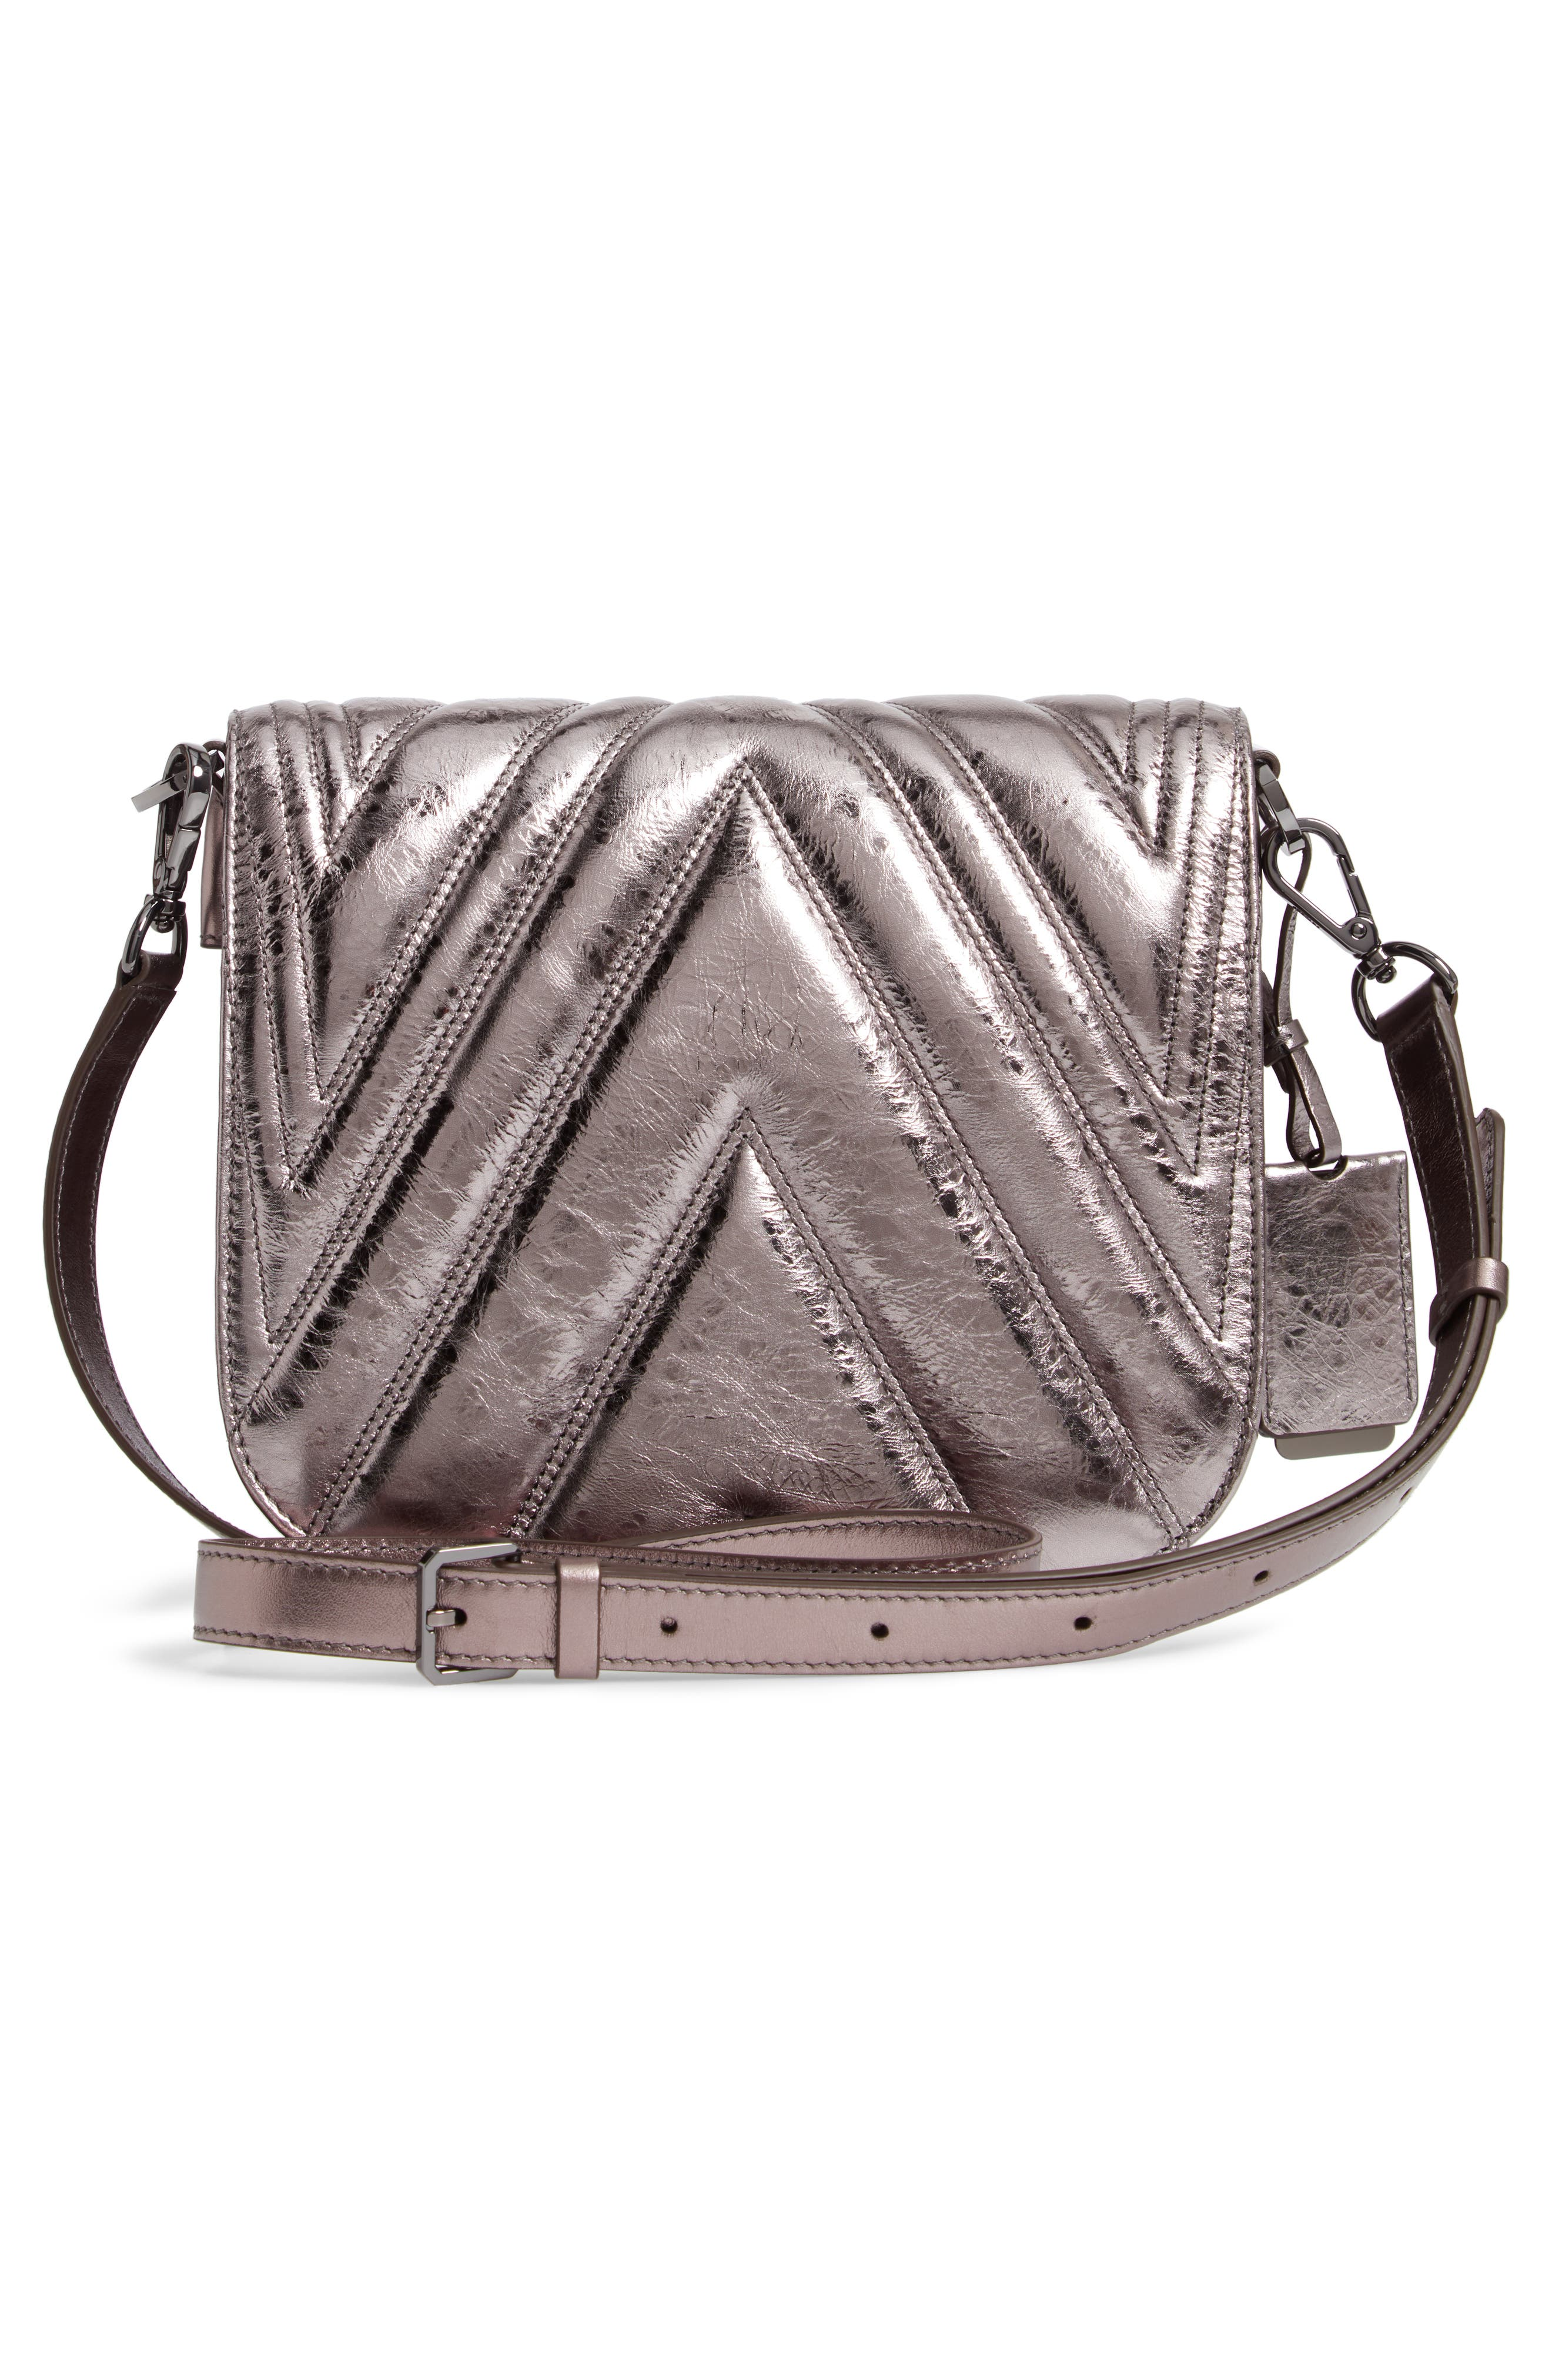 Patricia Quilted Metallic Leather Saddle Bag,                             Alternate thumbnail 3, color,                             040